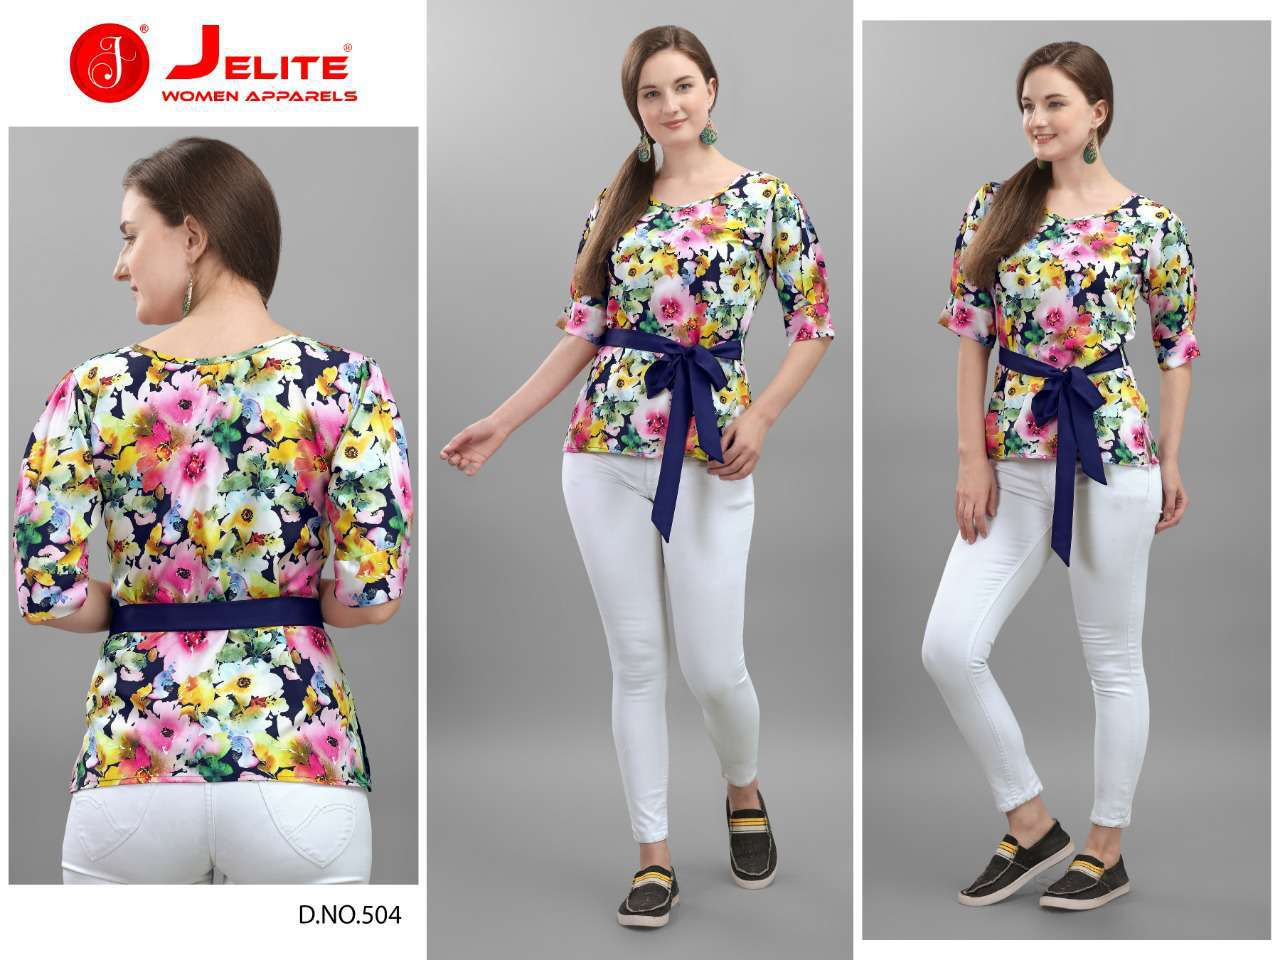 Jelite Orchid Tops Wholesale Catalog 8 Pcs 4 - Jelite Orchid Tops Wholesale Catalog 8 Pcs